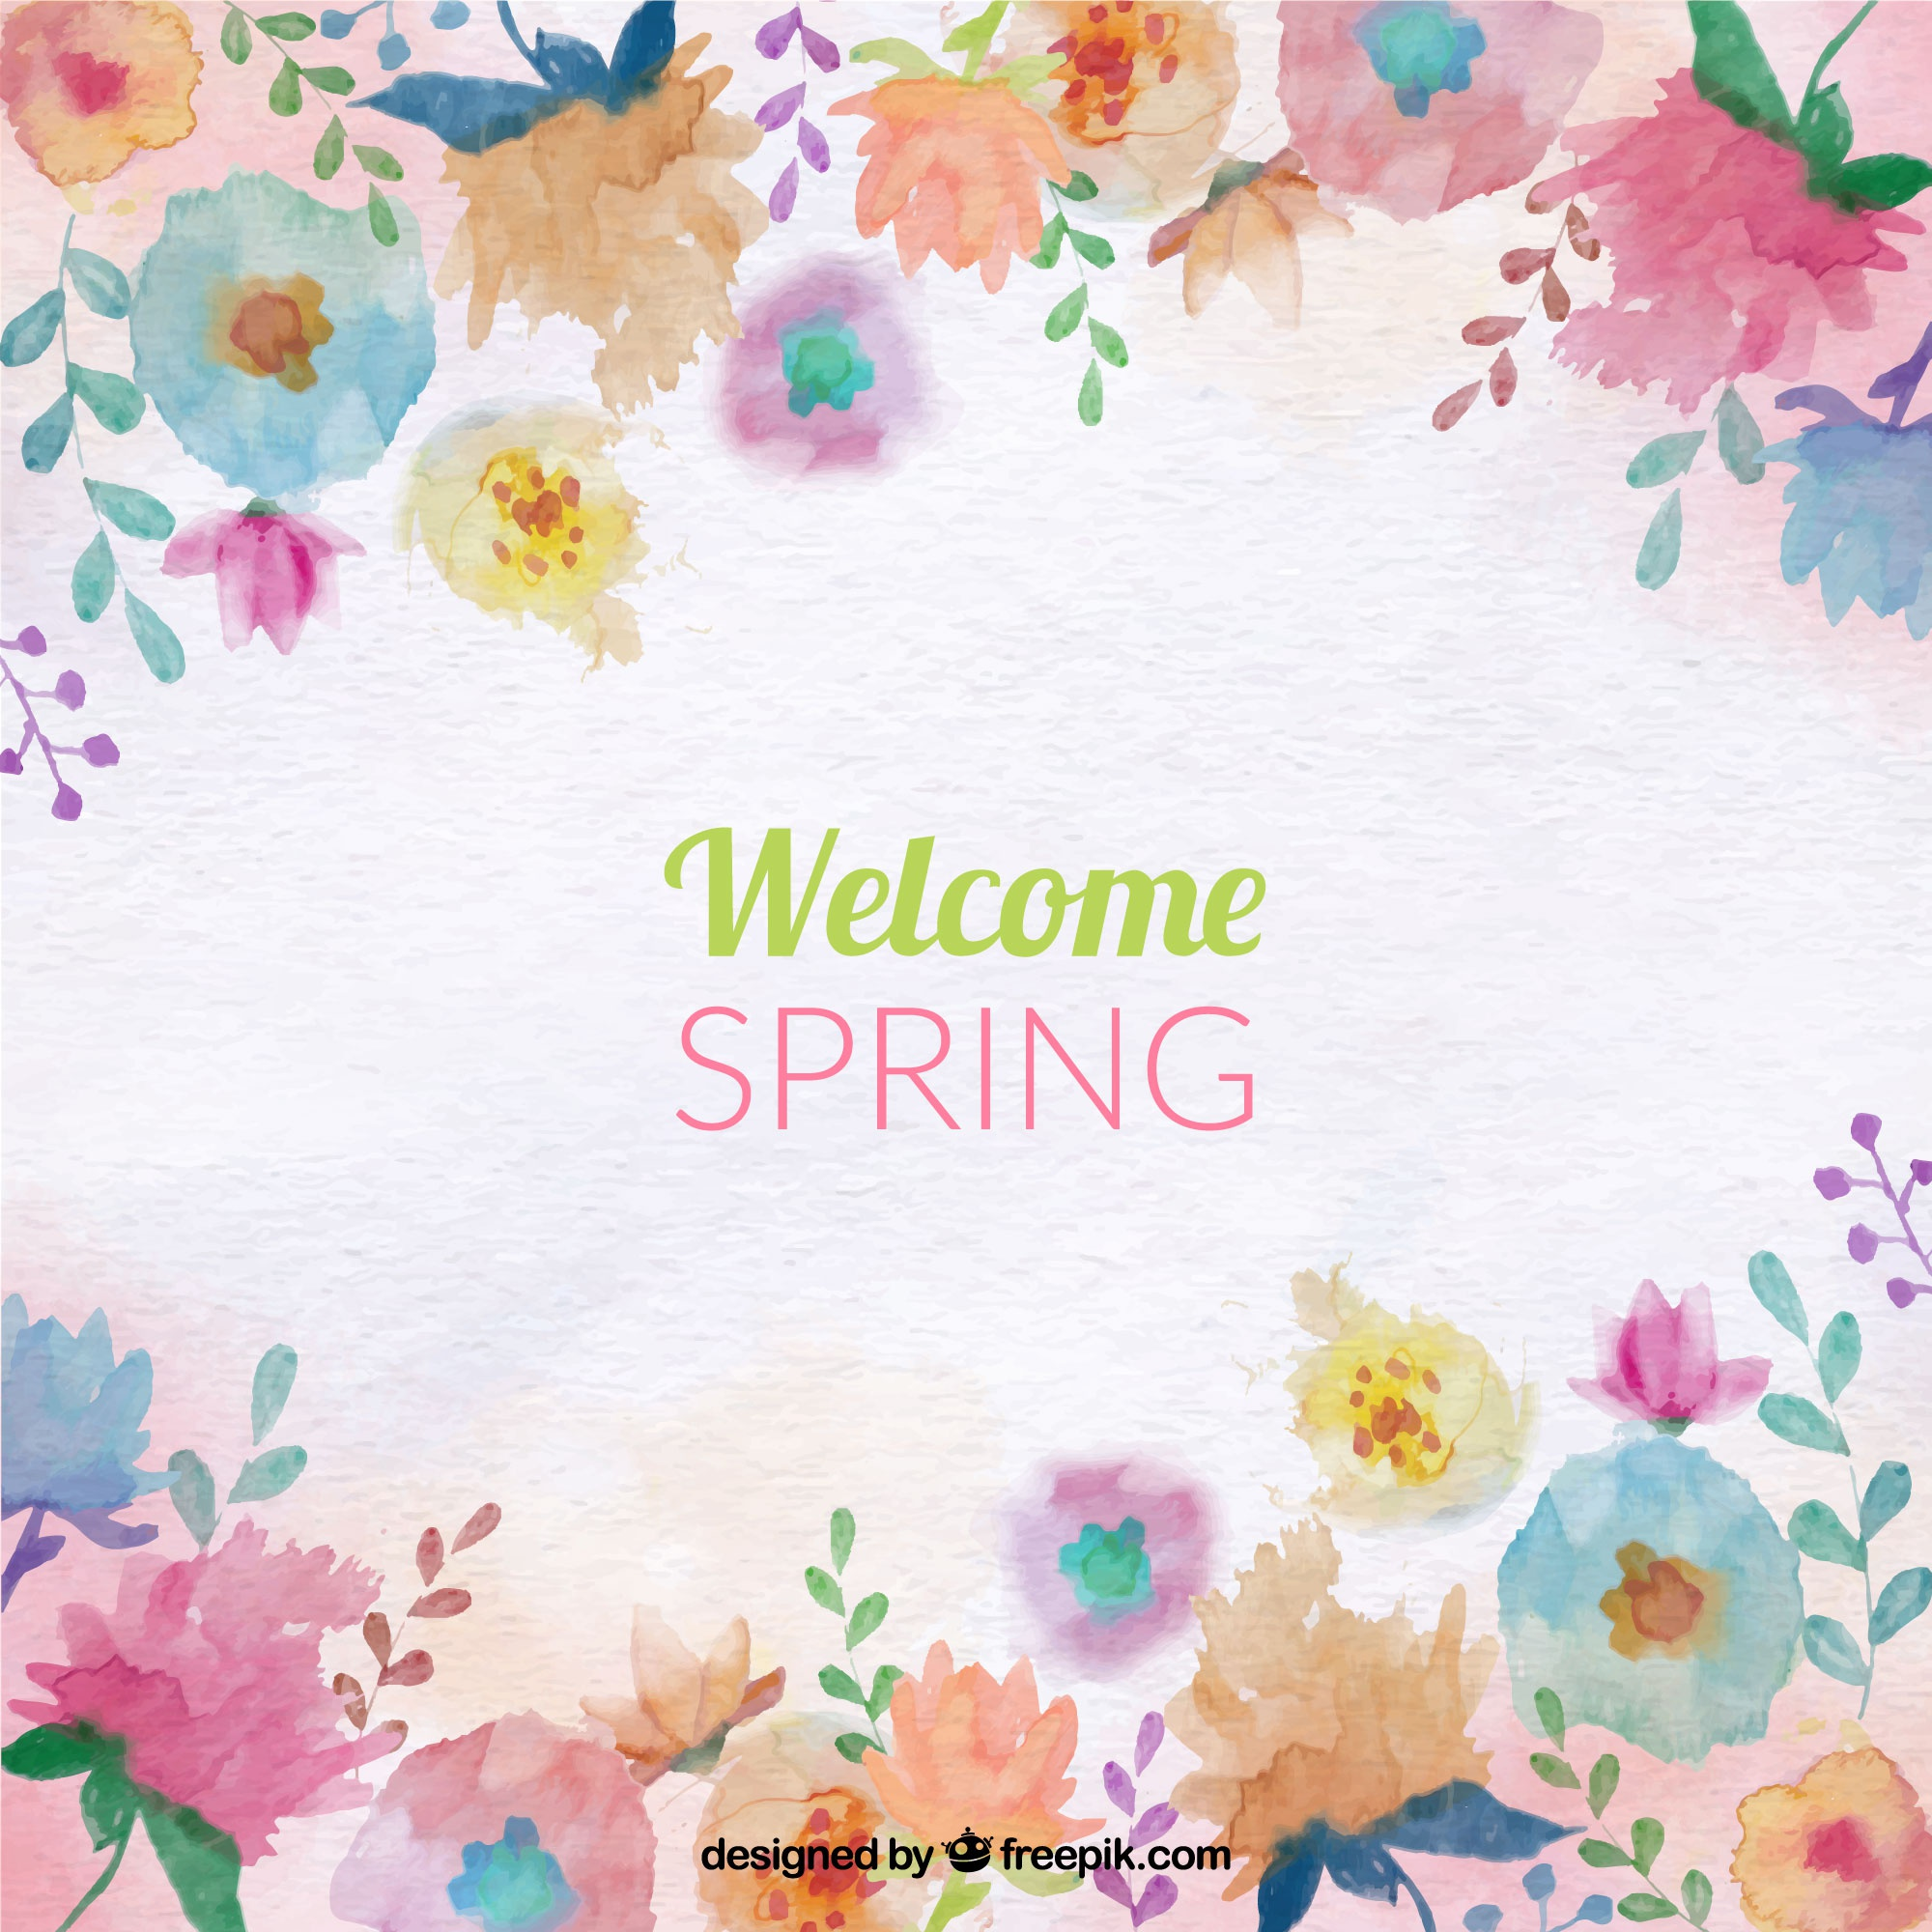 Spring background with colored watercolor flowers